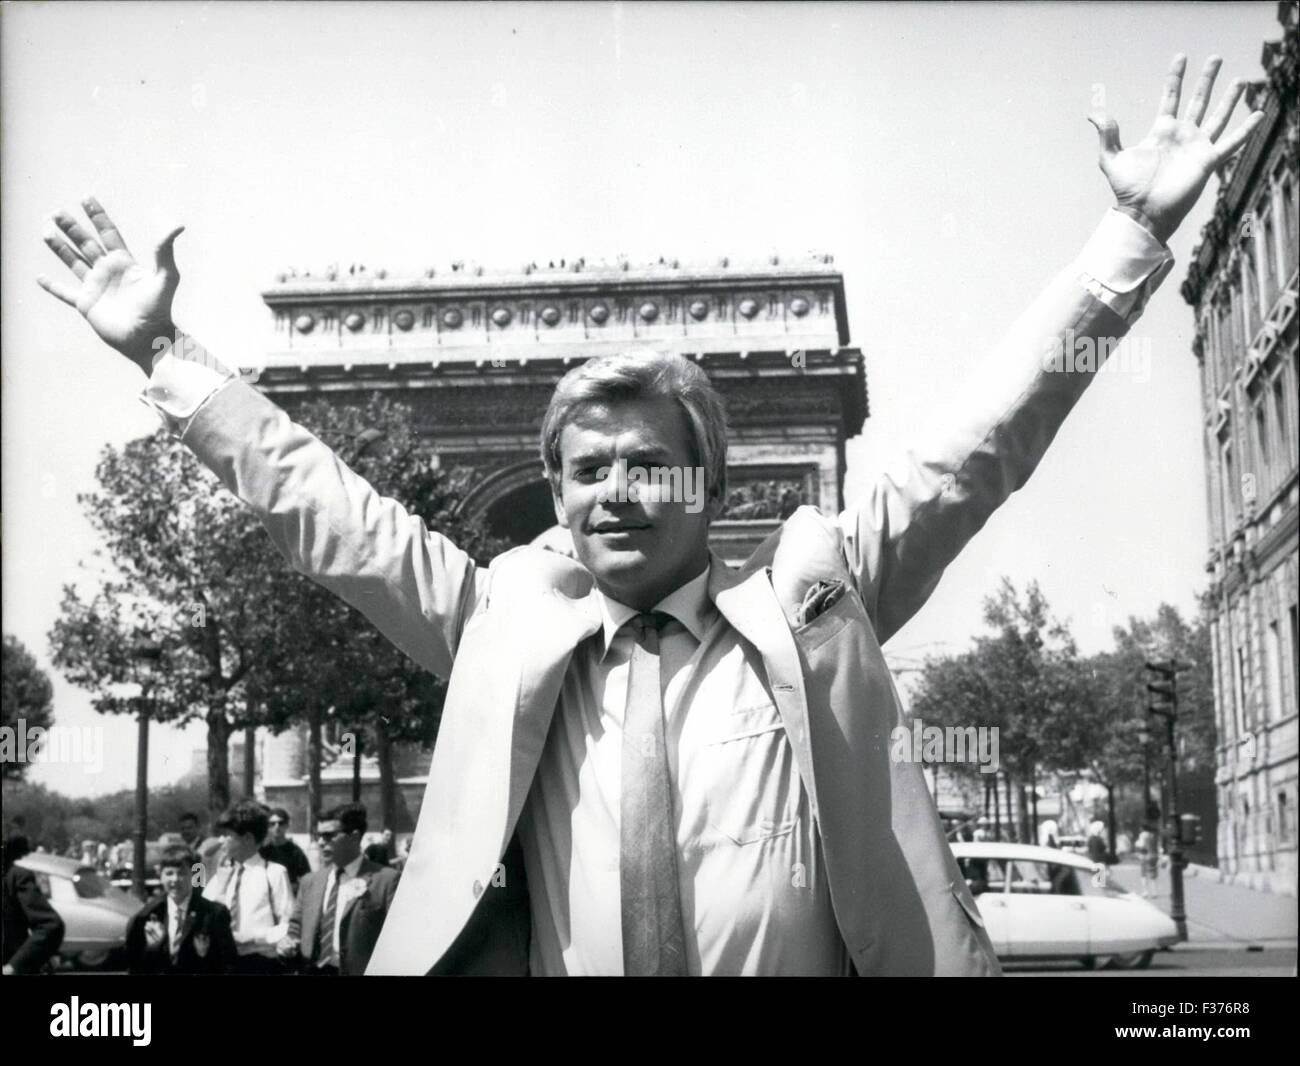 1965 - The Cinema Actor James Ward, Ki3Own As ''Skip'' Has Arrived In Paris To Liaks A Wili.The - Stock Image